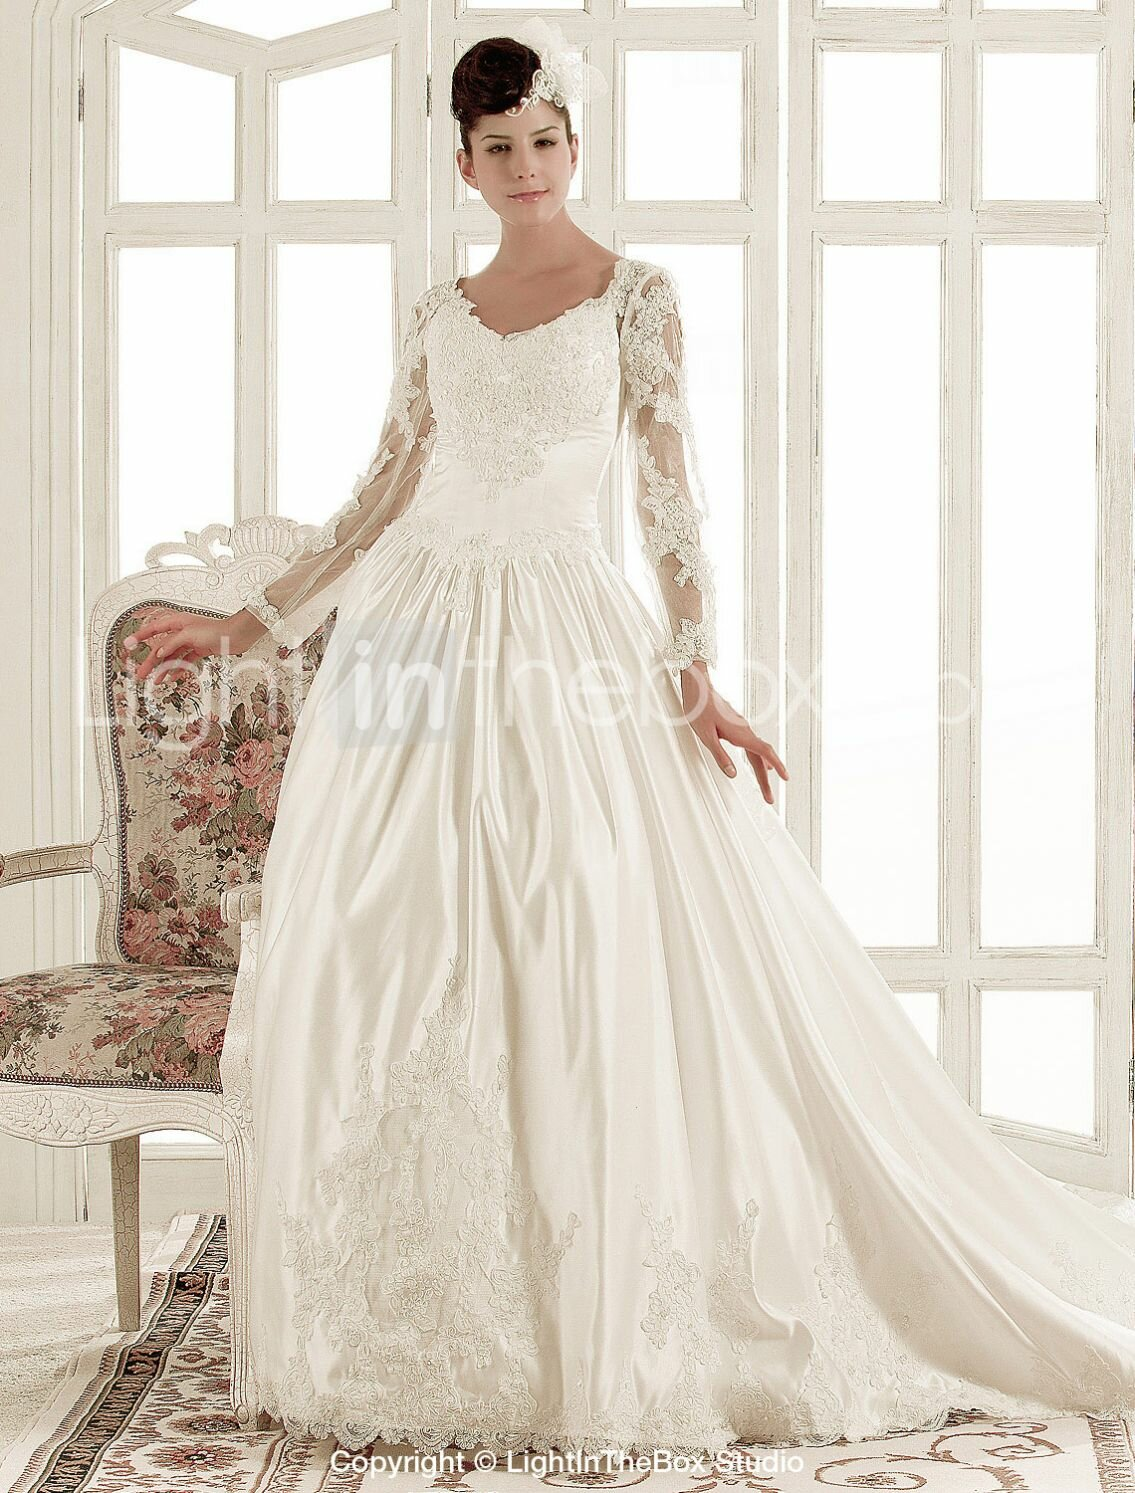 Long Sleeve Modest Wedding Dress Pictures Ideas Guide To Buying Stylish Wedding Dresses